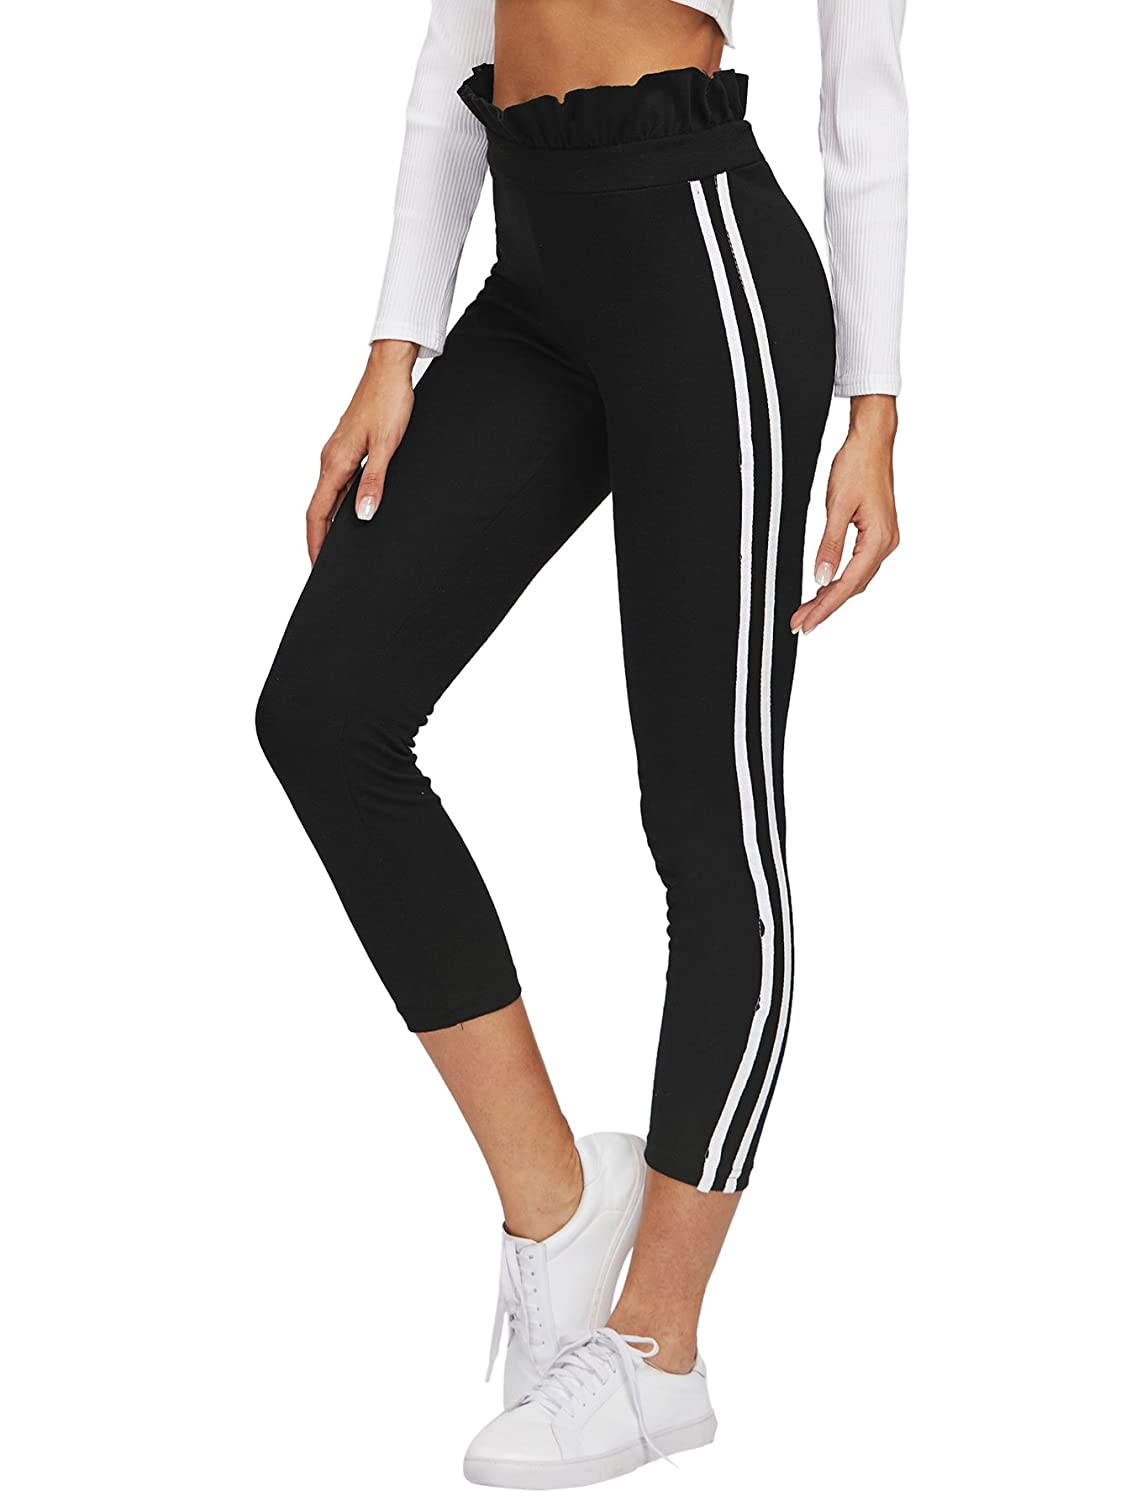 SweatyRocks Women's Stretchy Capris High Waist Ruffle Cropped Leggings